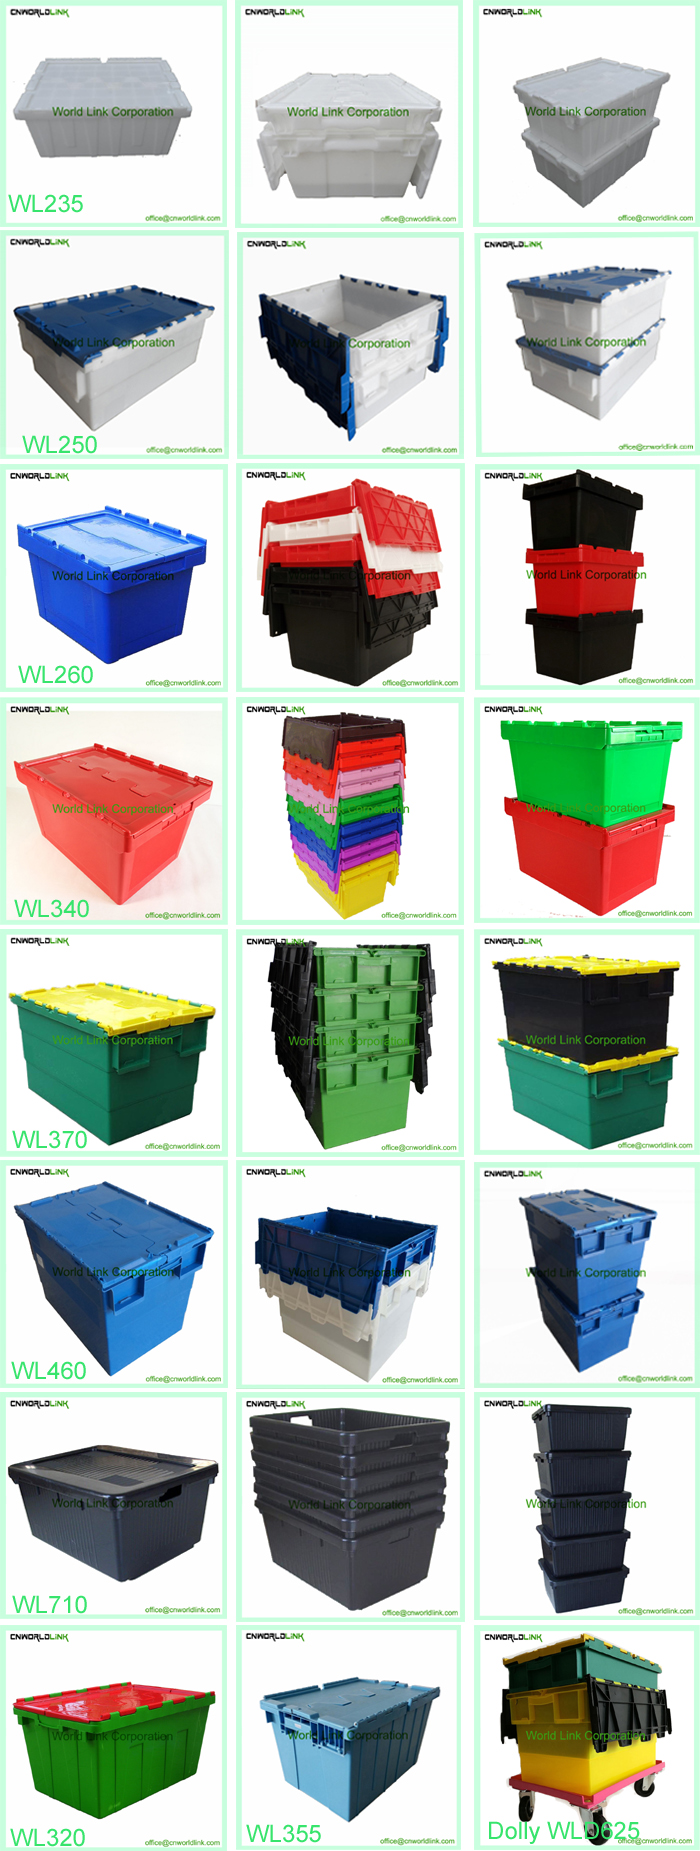 With EN840 High Quality Plastic Waste Container 1100